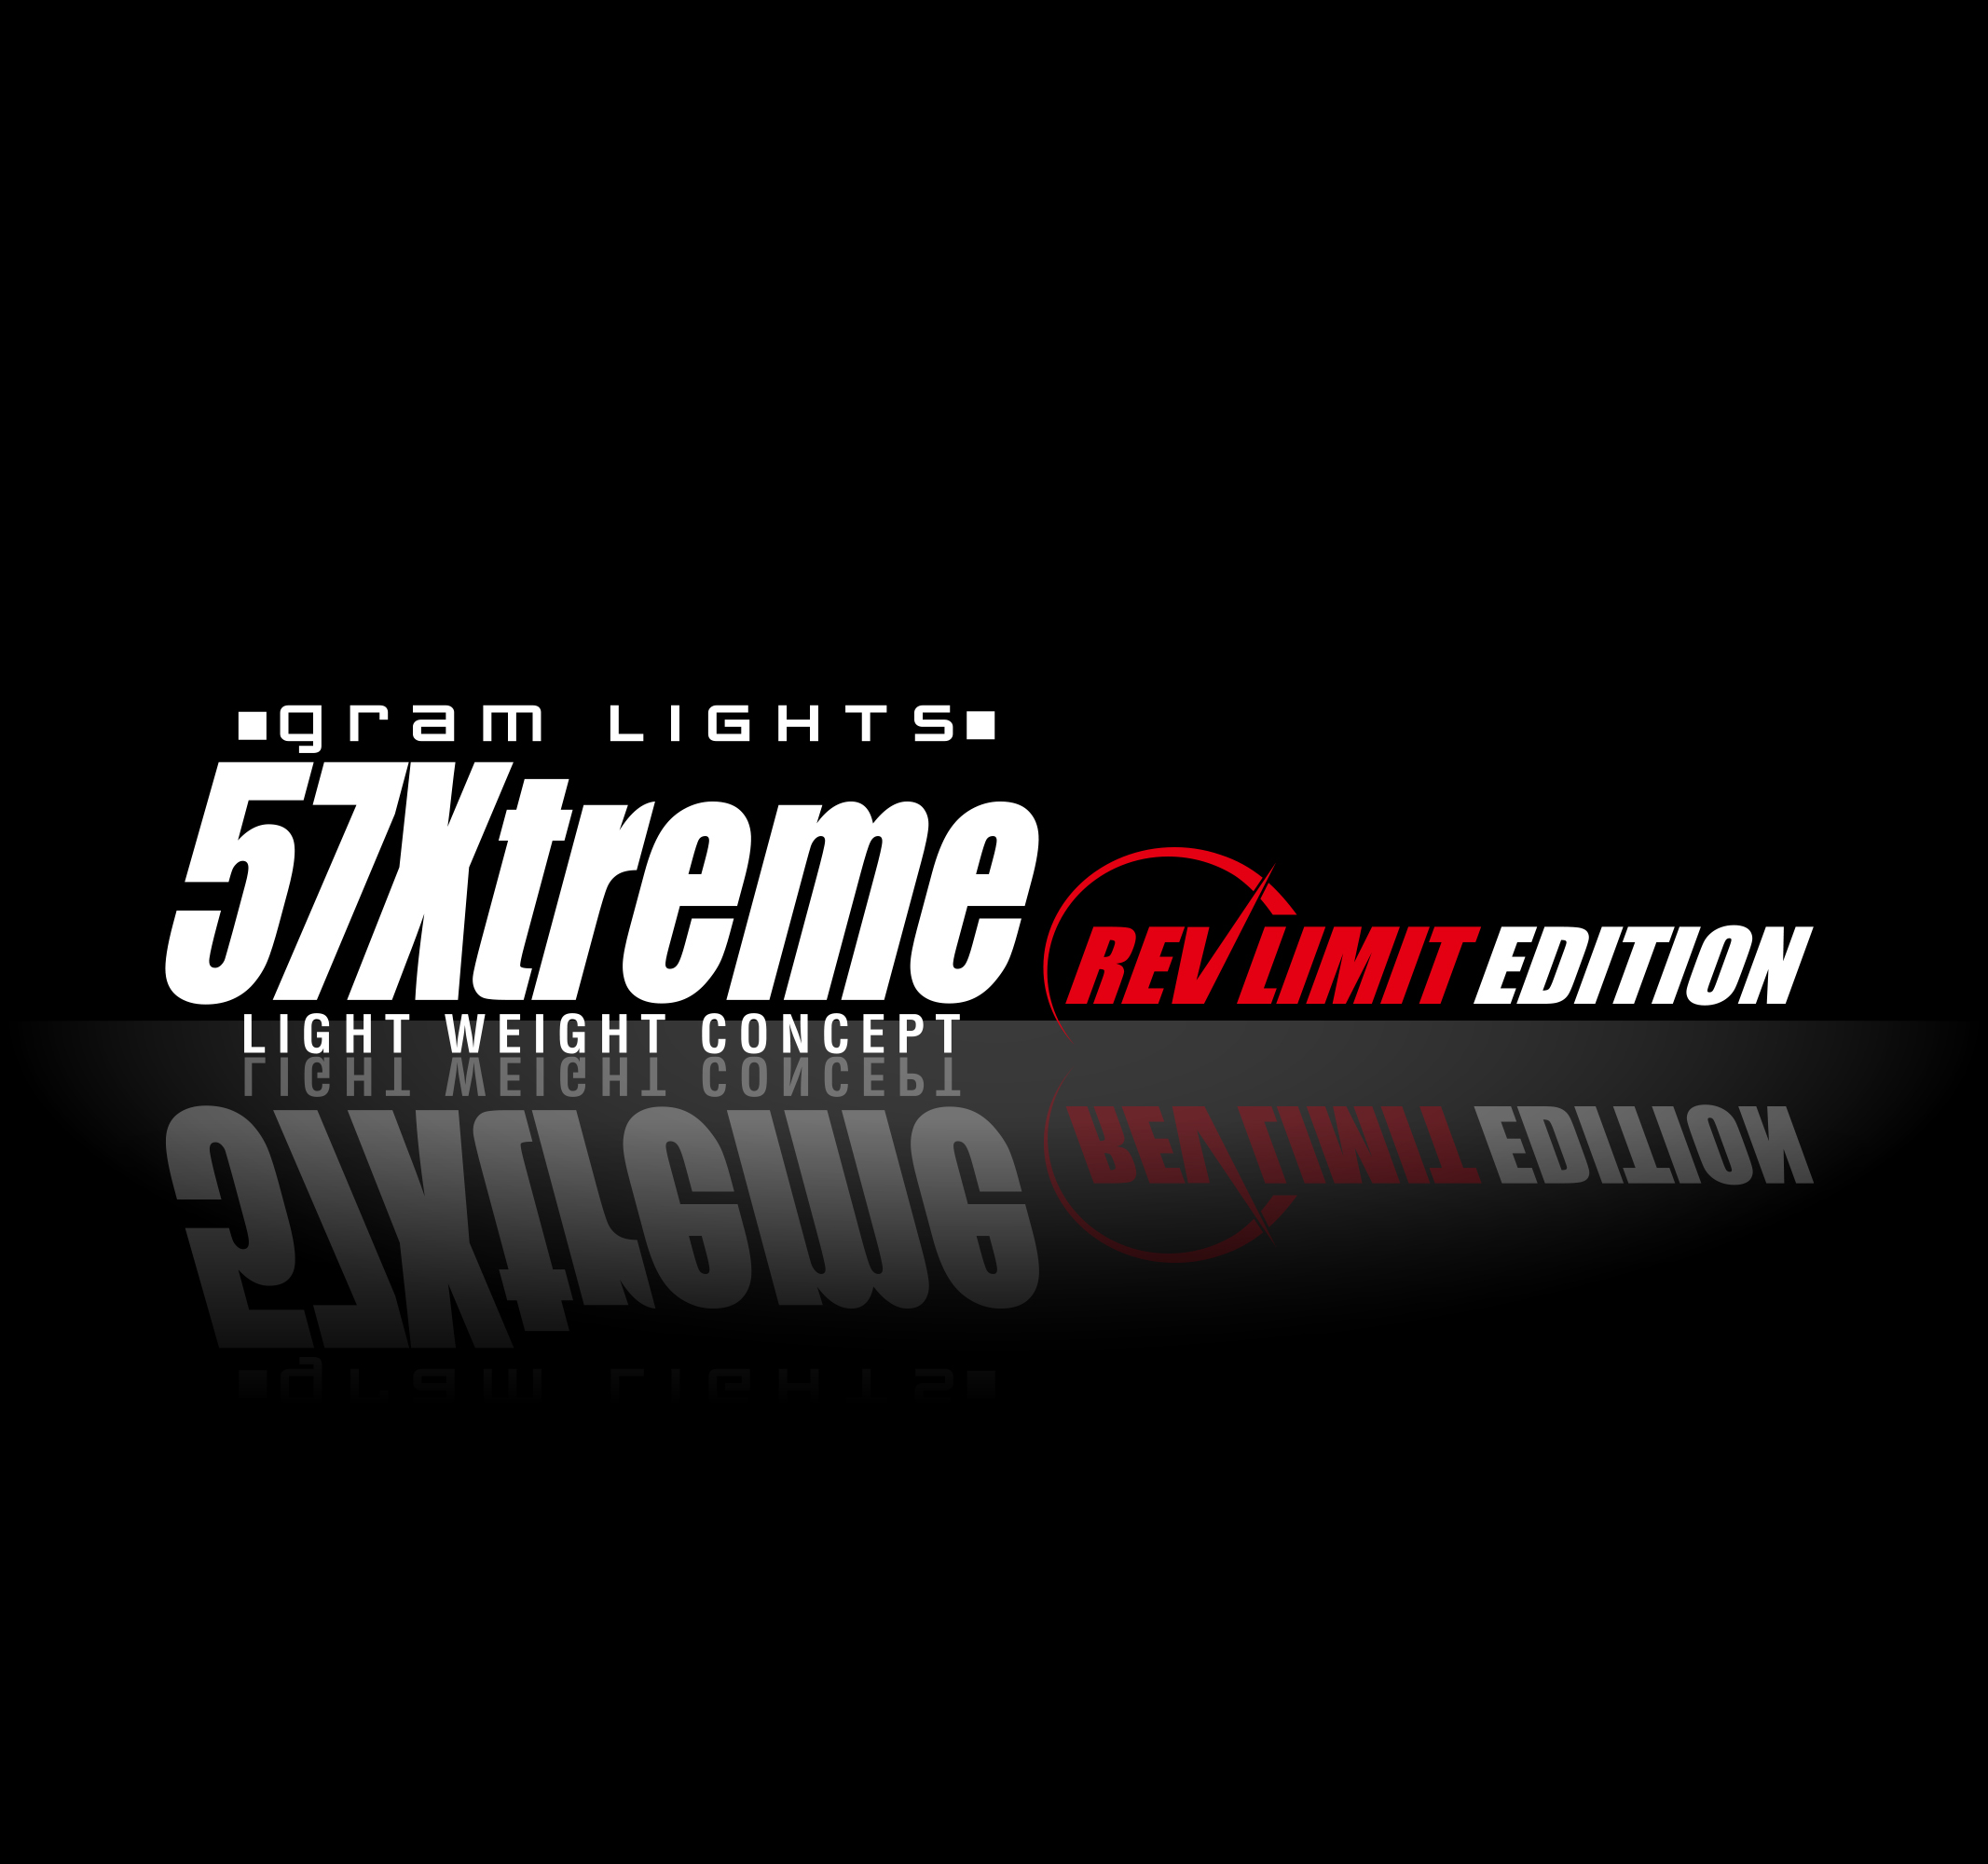 57XTREME REV LIMIT EDITION